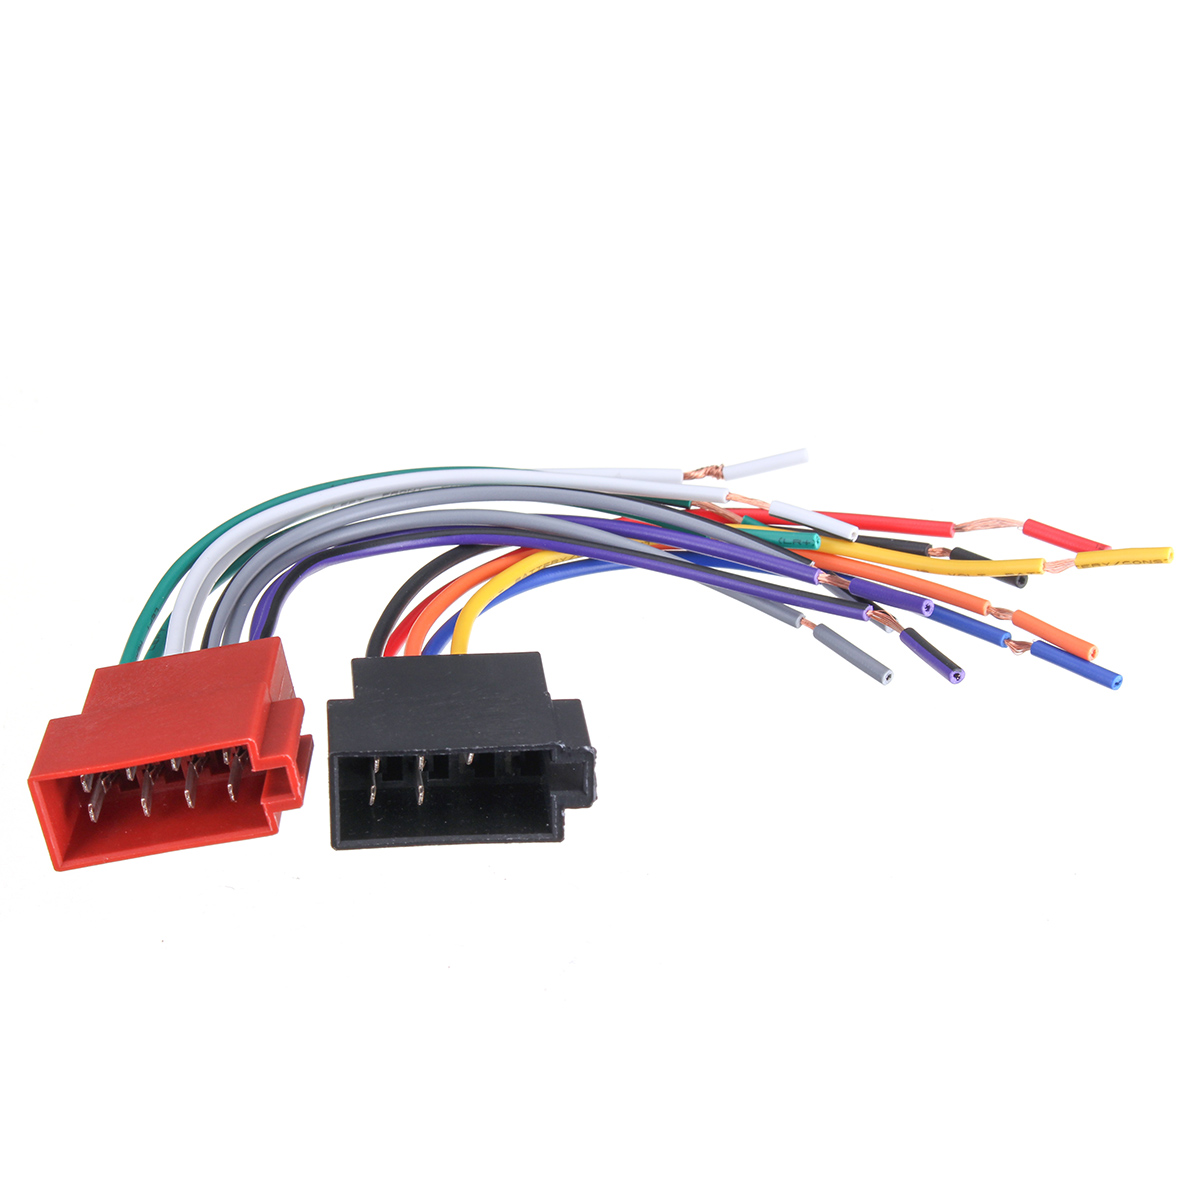 Audio Cables Universal Car Stereo Female Iso Radio Plug Adapter Wiring Harness Wire Cable